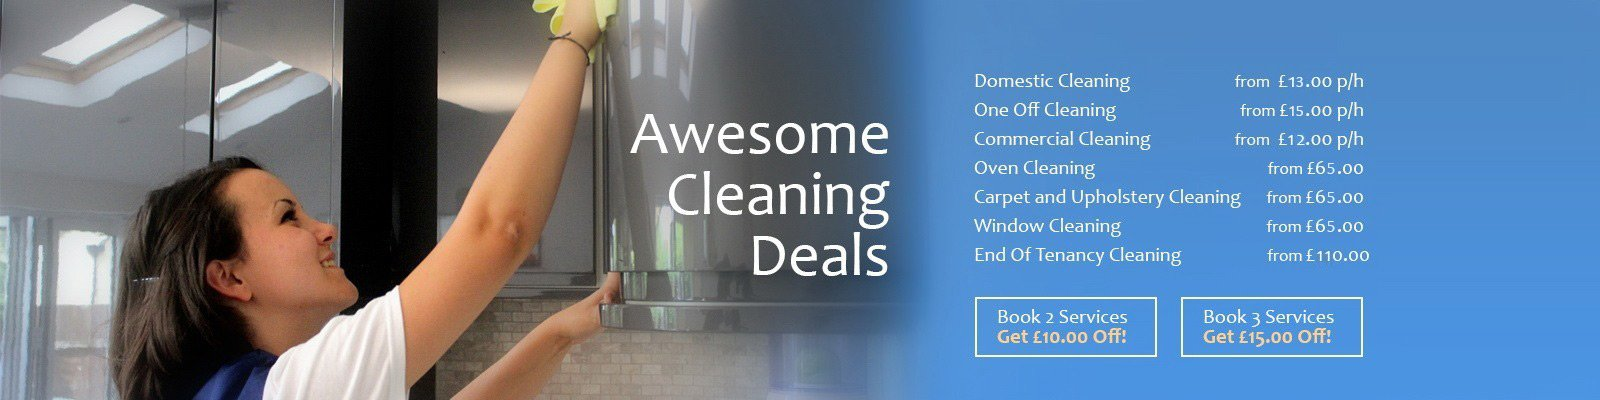 cleaning-deals-new